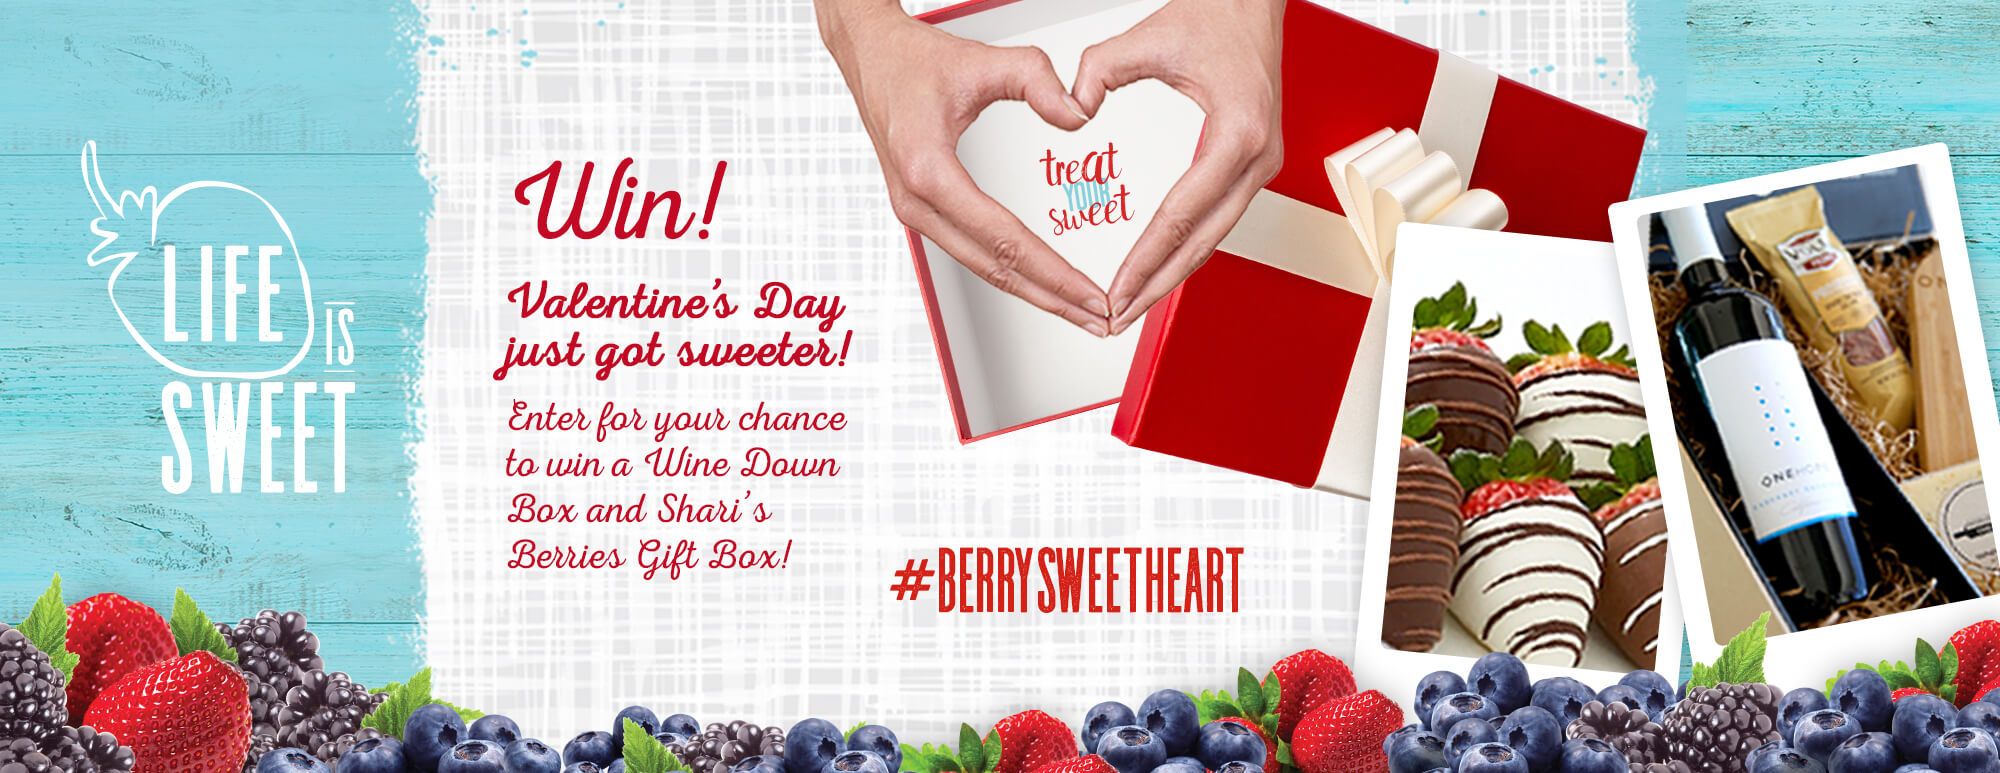 Life is Sweet Giveaway Wish Farms Florida Berries